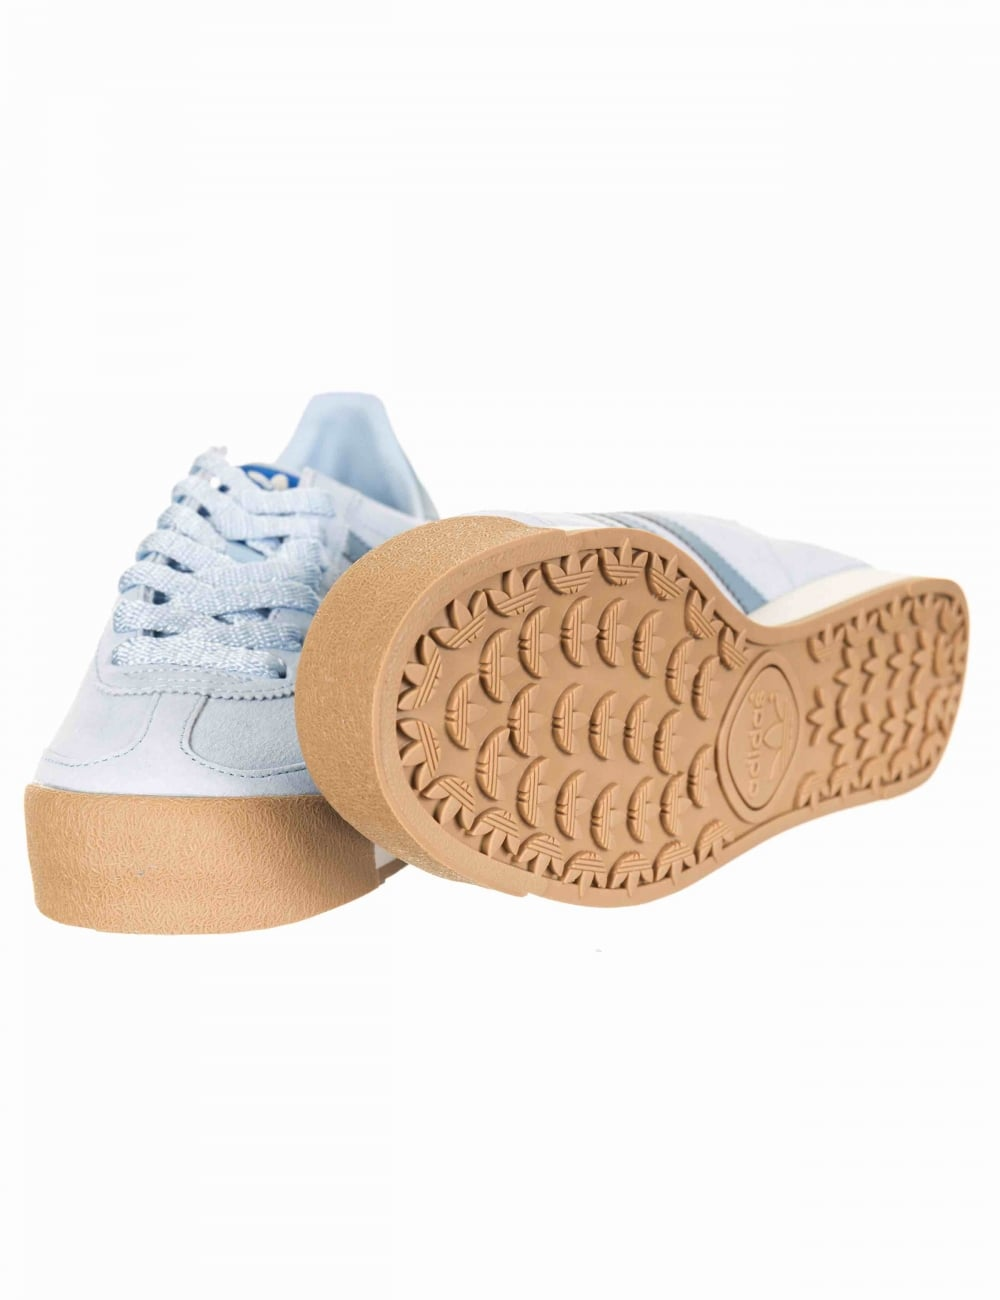 Adidas Originals Samoa Vintage Shoes - Vintage Talc Blue Chalk White ... e5426b0a7